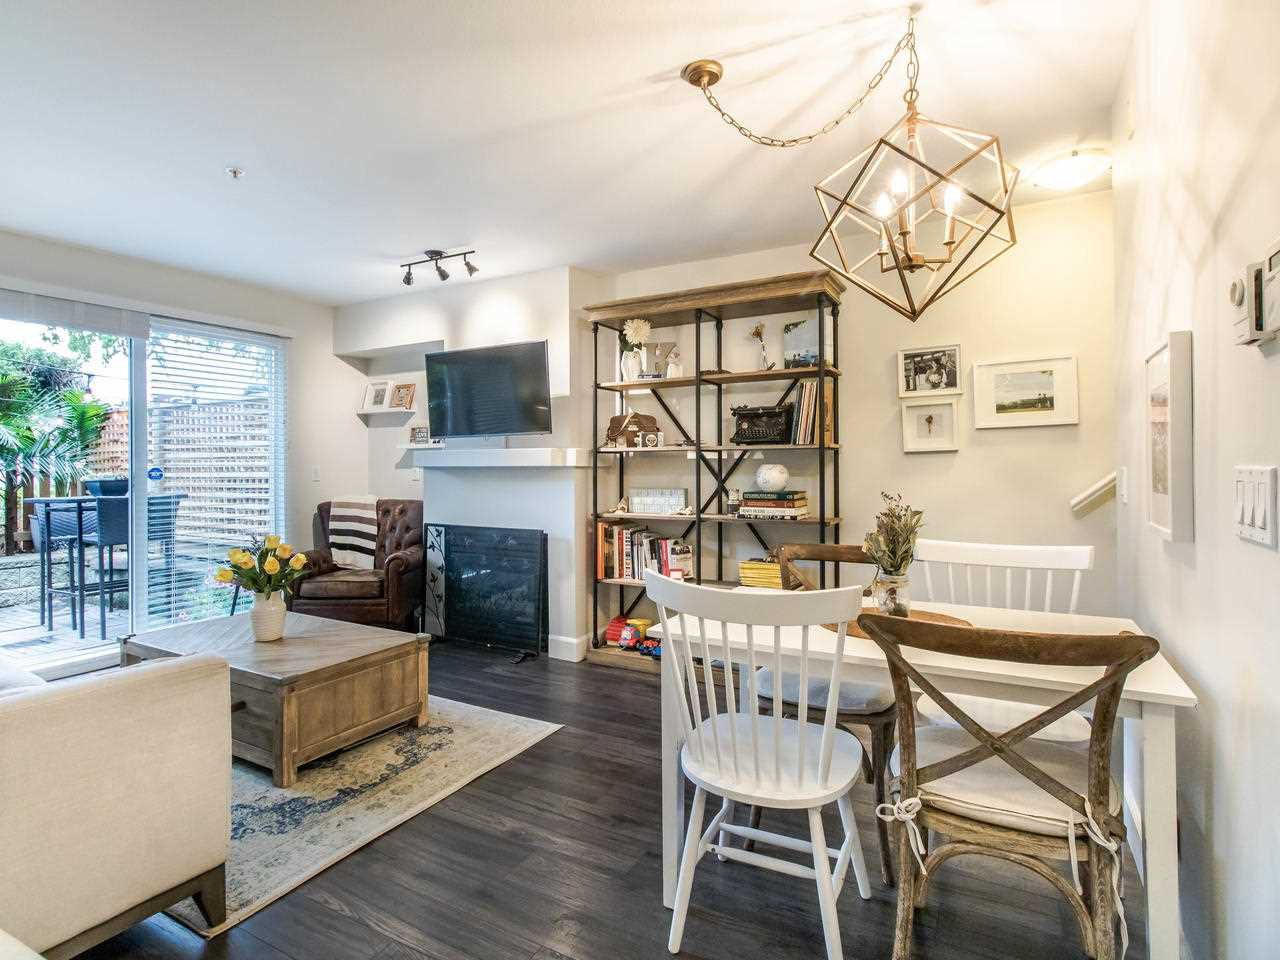 """Main Photo: 1 3140 W 4TH Avenue in Vancouver: Kitsilano Townhouse for sale in """"AVANTI"""" (Vancouver West)  : MLS®# R2468678"""